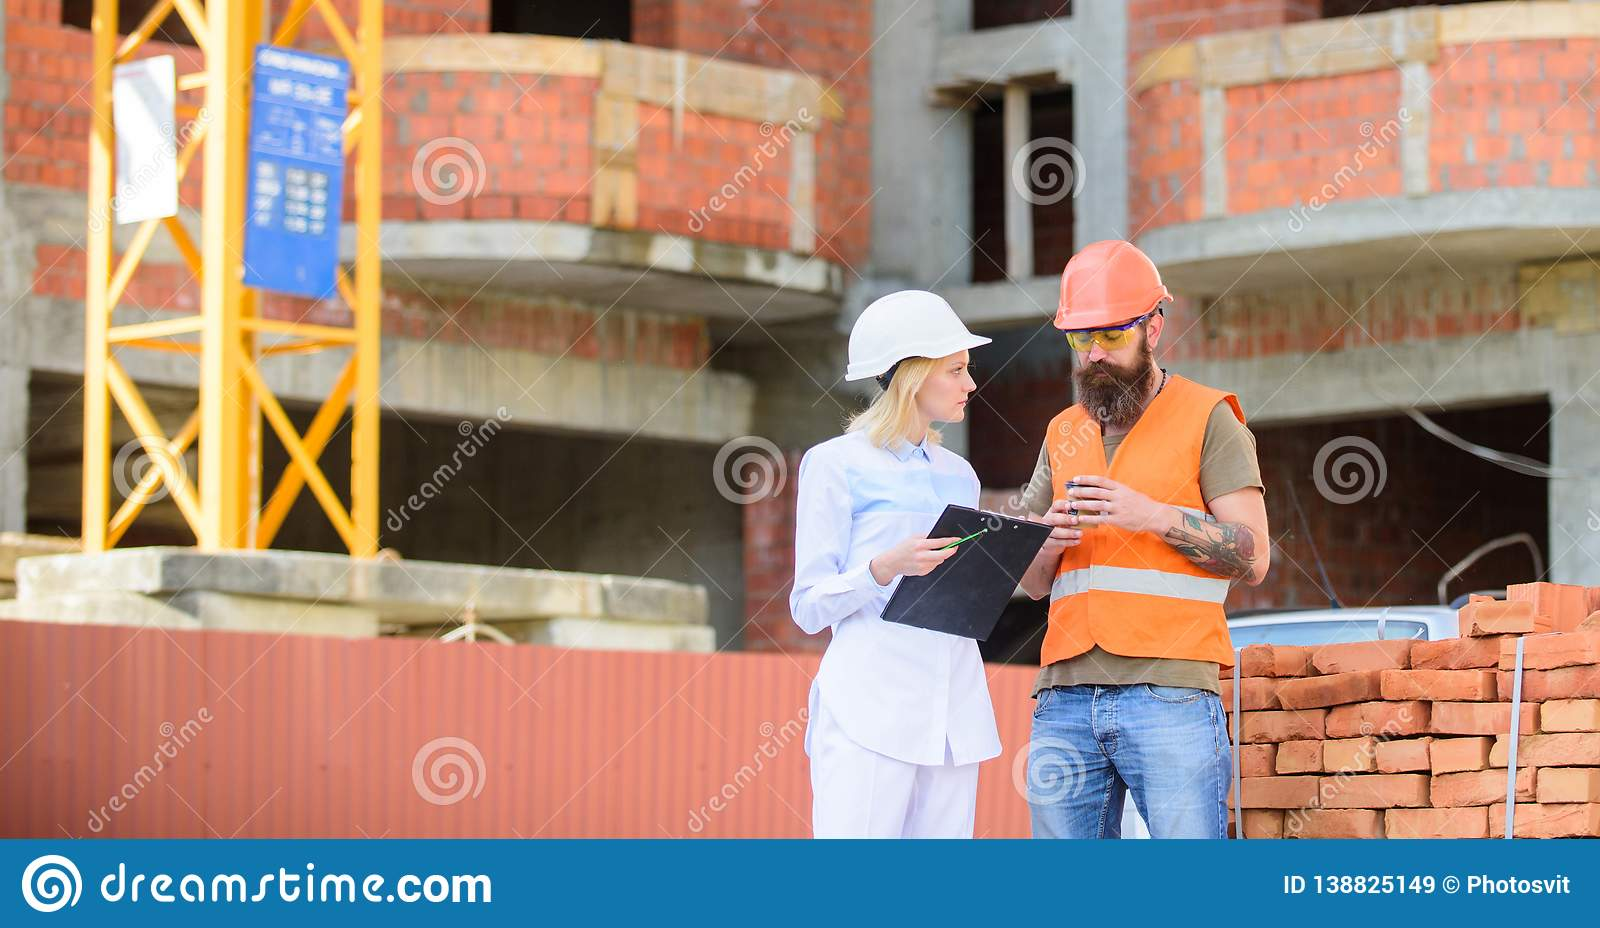 Construction team communication concept. Relationships between construction clients and participants building industry